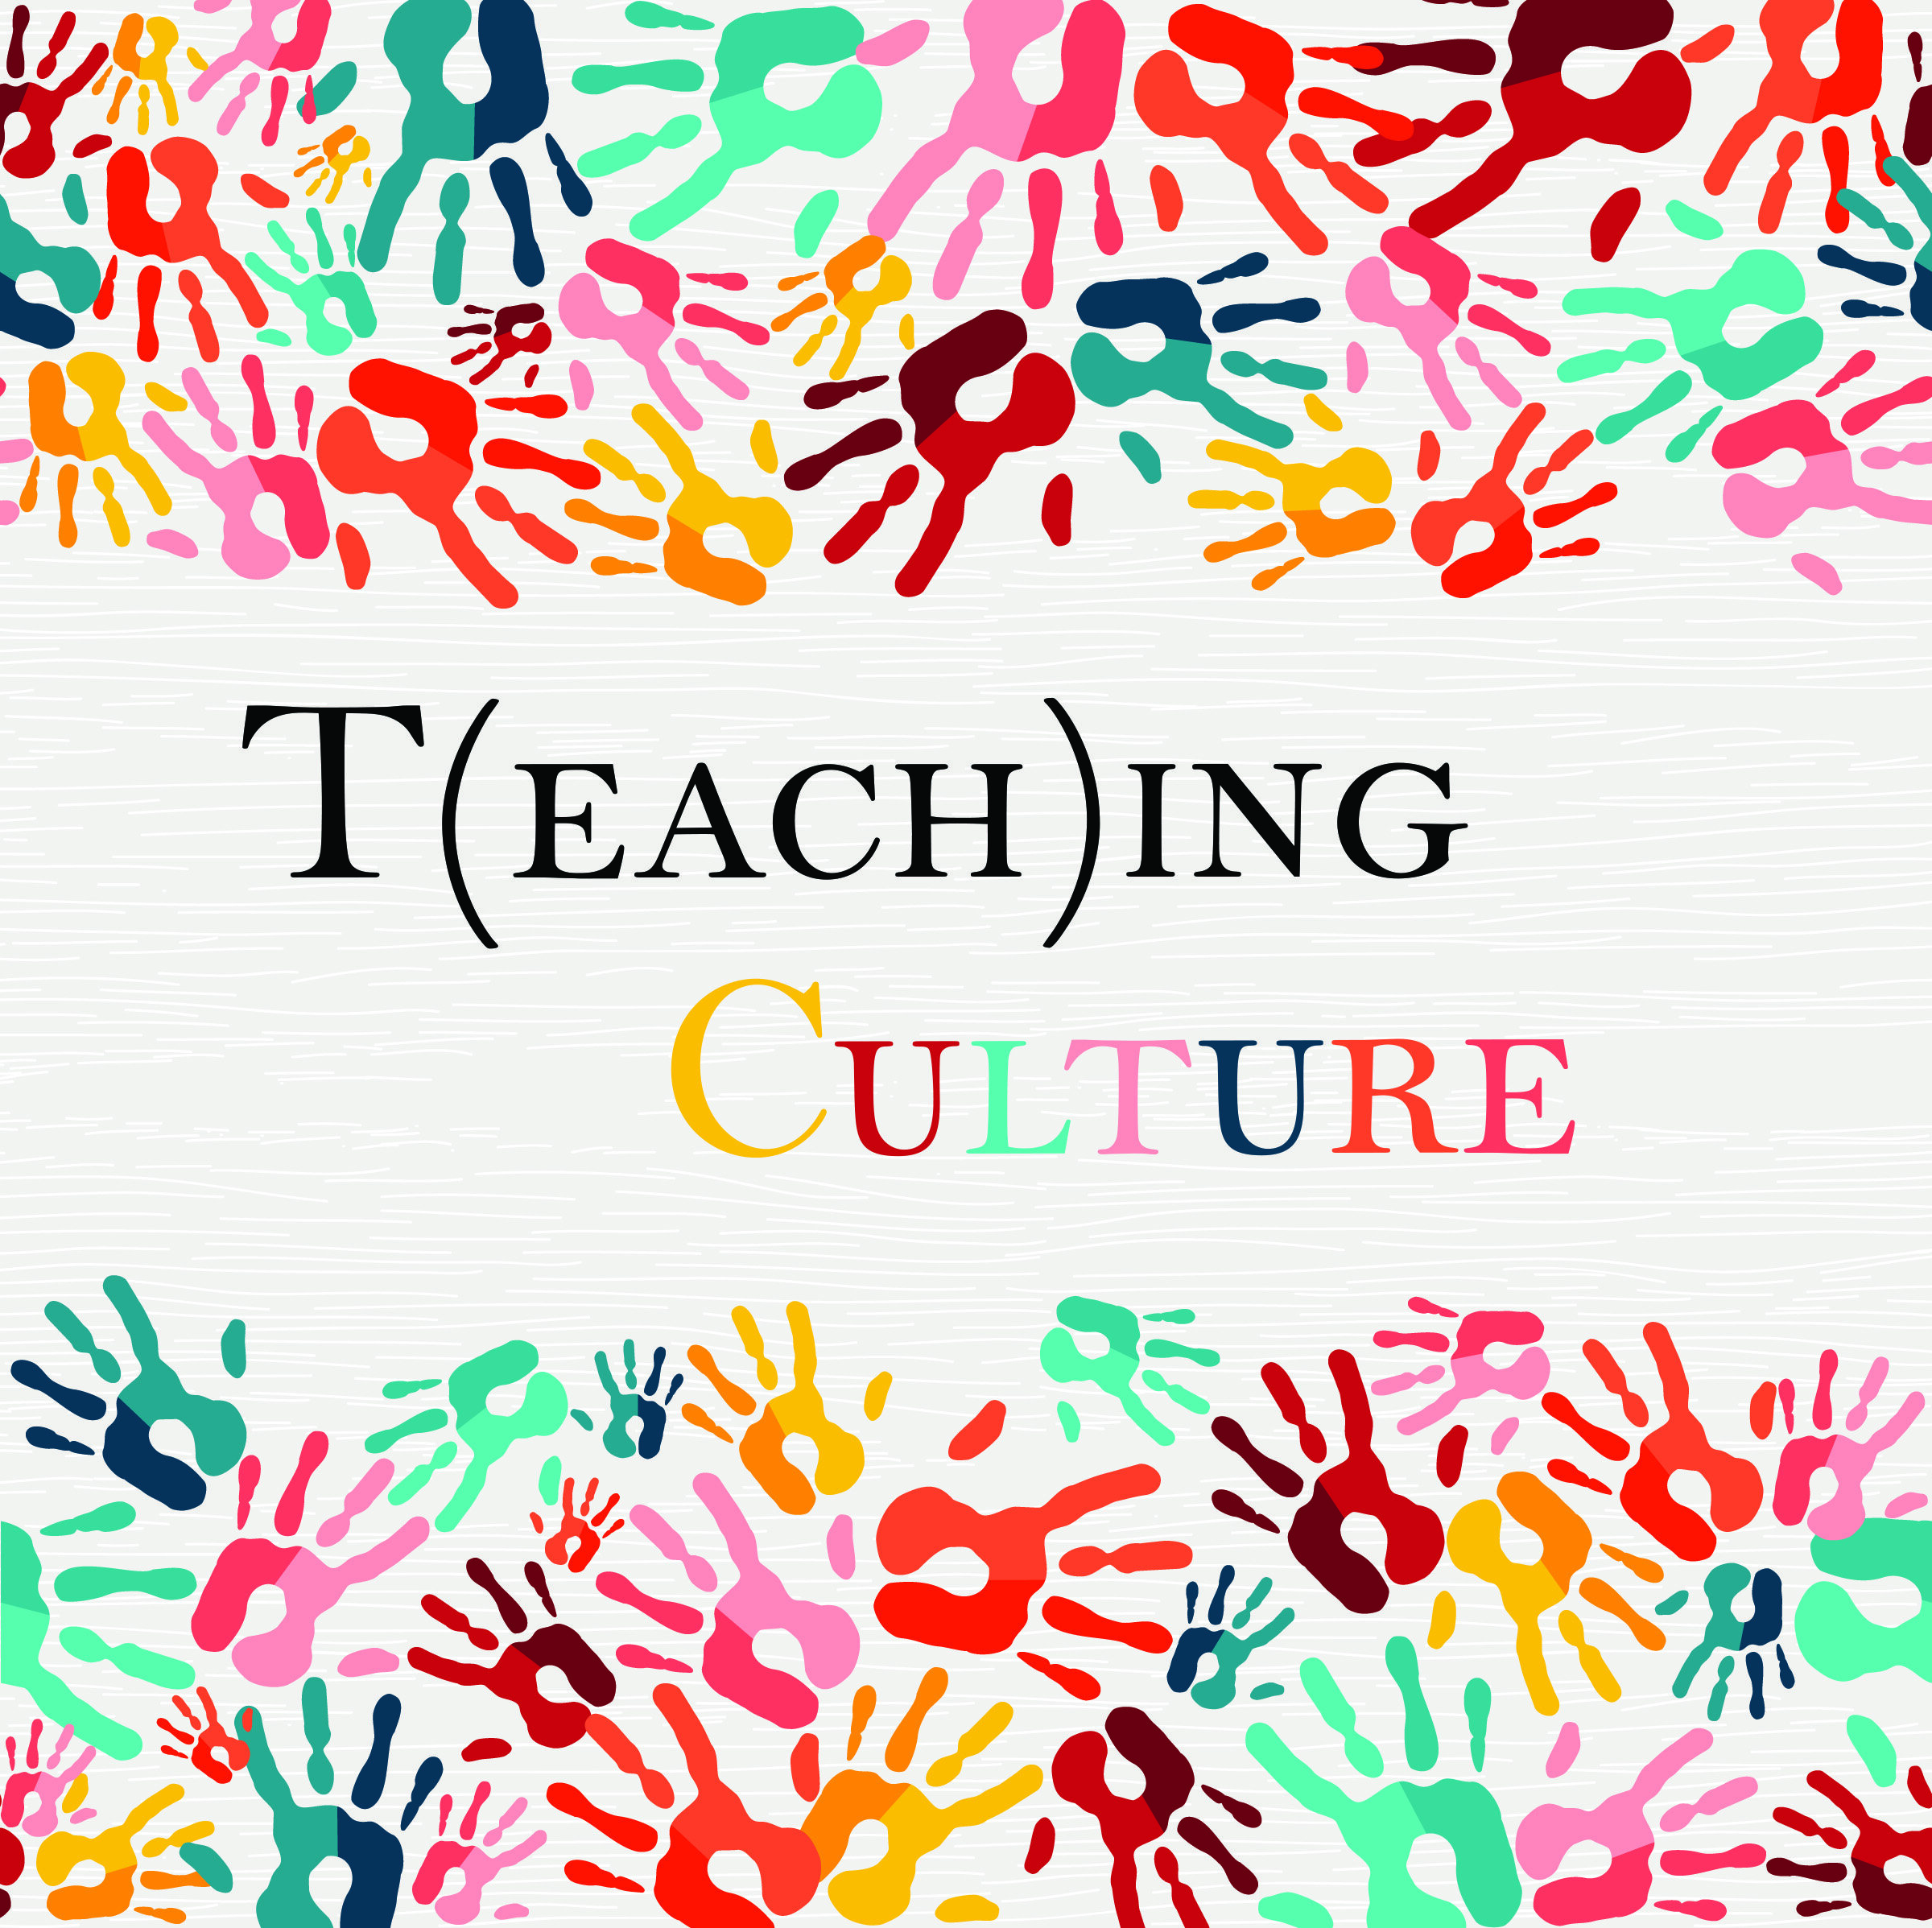 Teaching Culture Interview Questionnaire — T(each)ing Culture